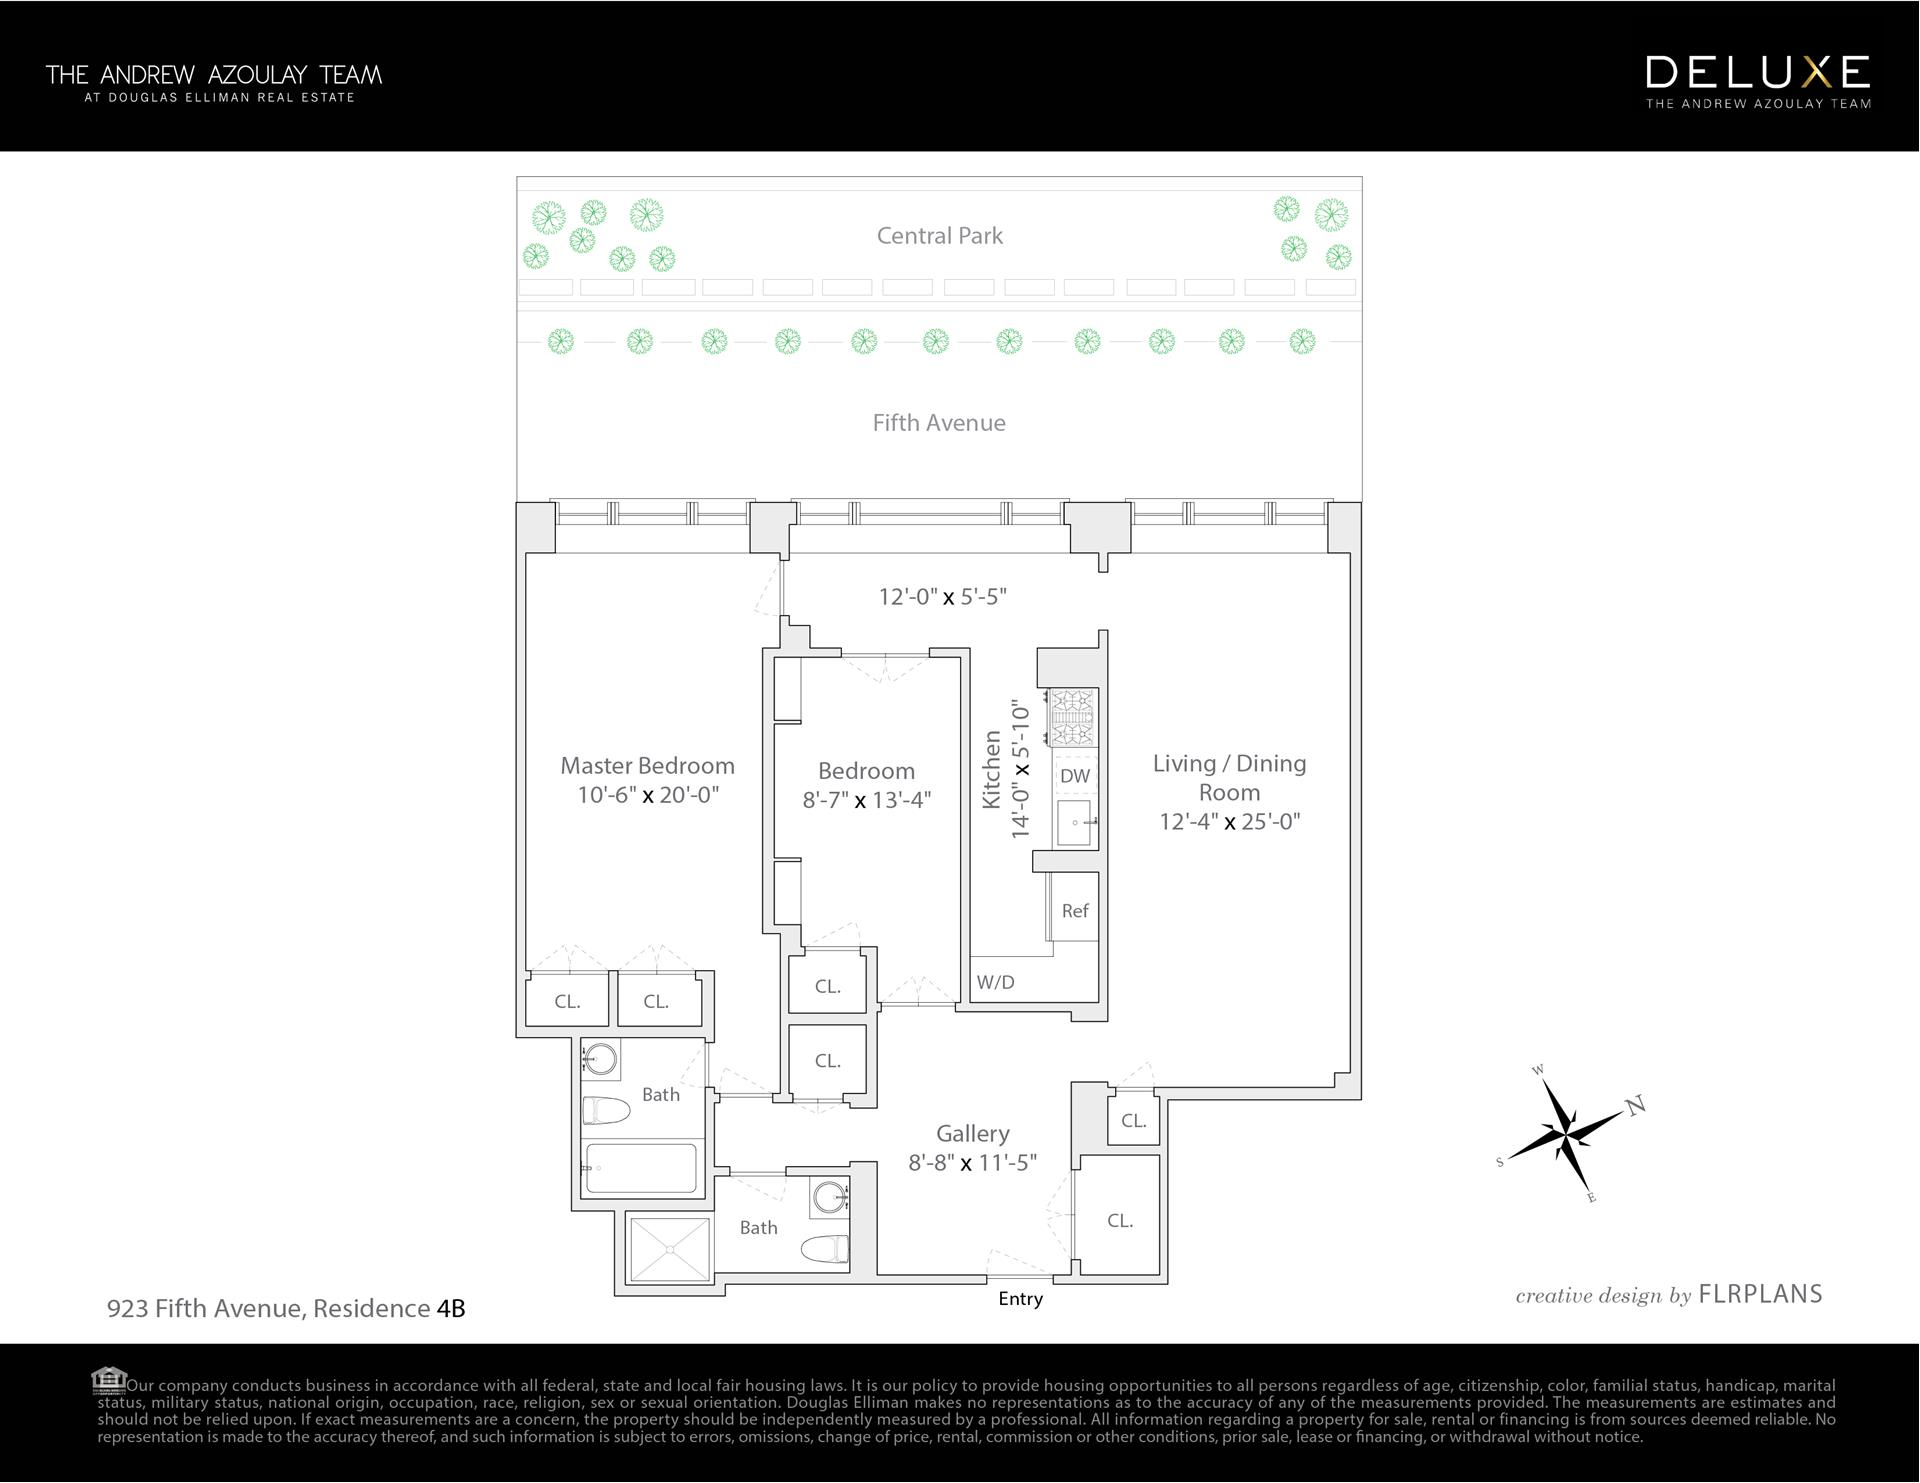 Floor plan of 923 Fifth Avenue, 4B - Upper East Side, New York